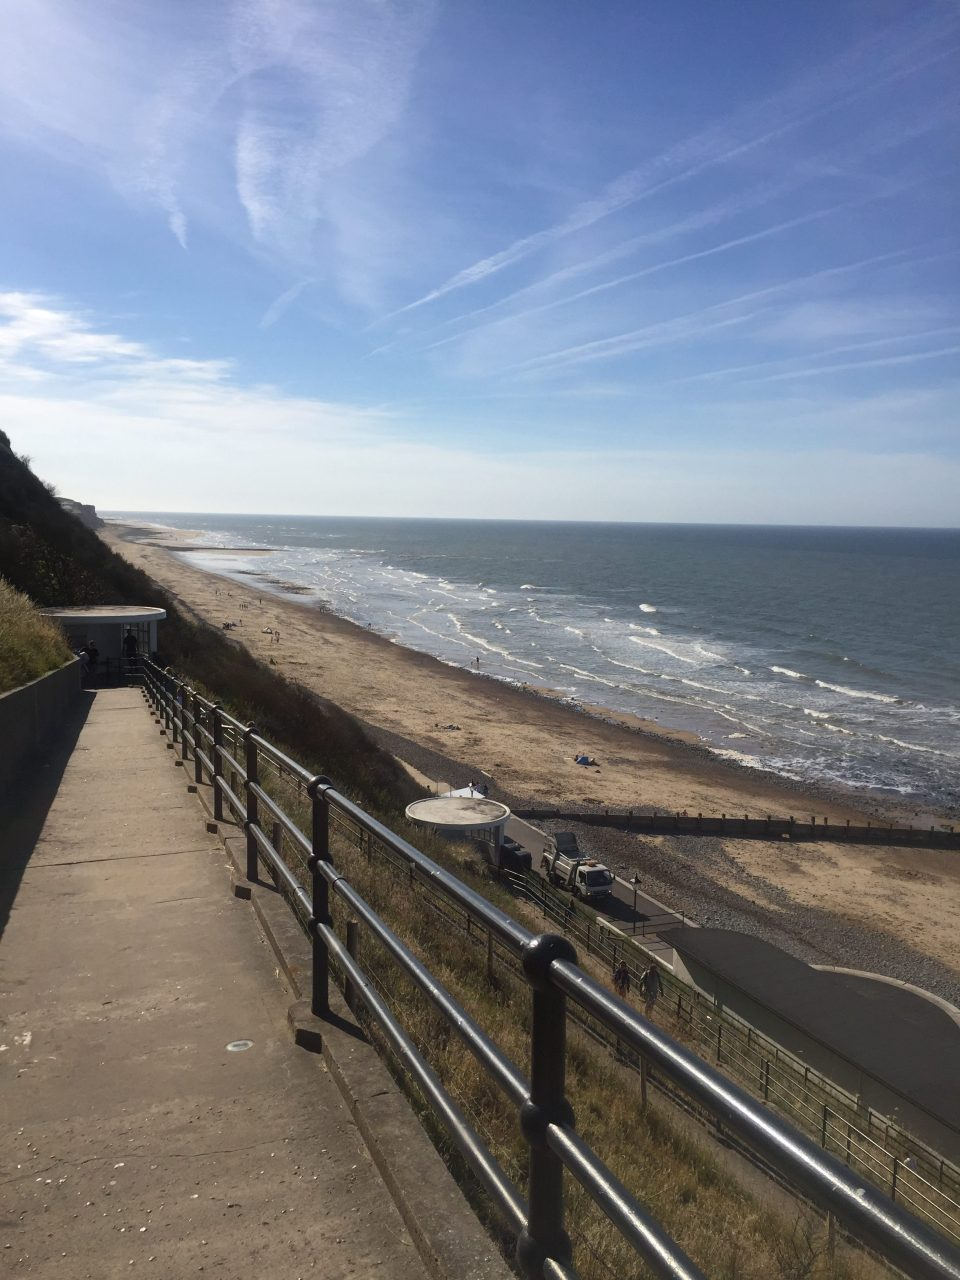 Cromer beach from the steps of the promenade.